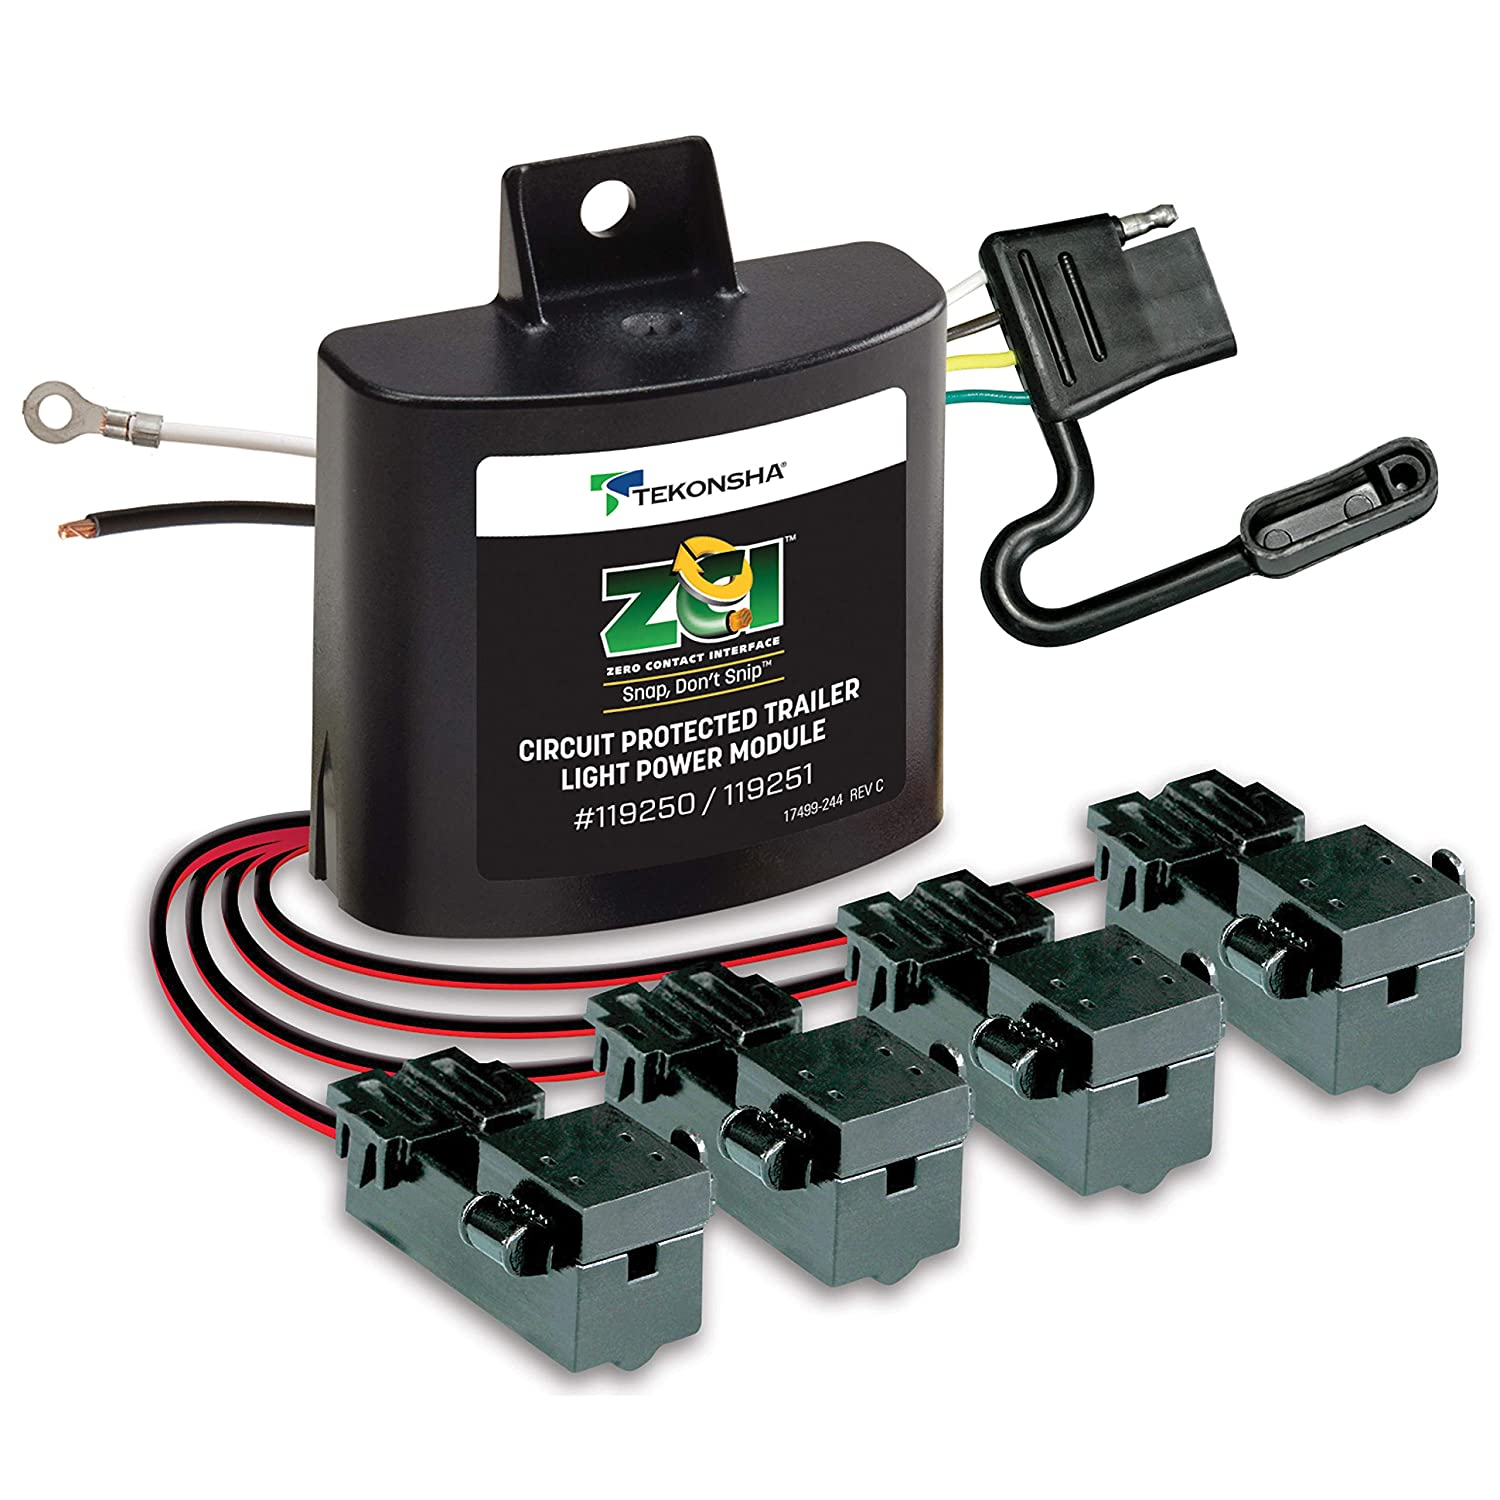 Tekonsha 119250 T Connector Automotive Curt Vehicle Wiring Harness With 4 Pole Flat Trailer